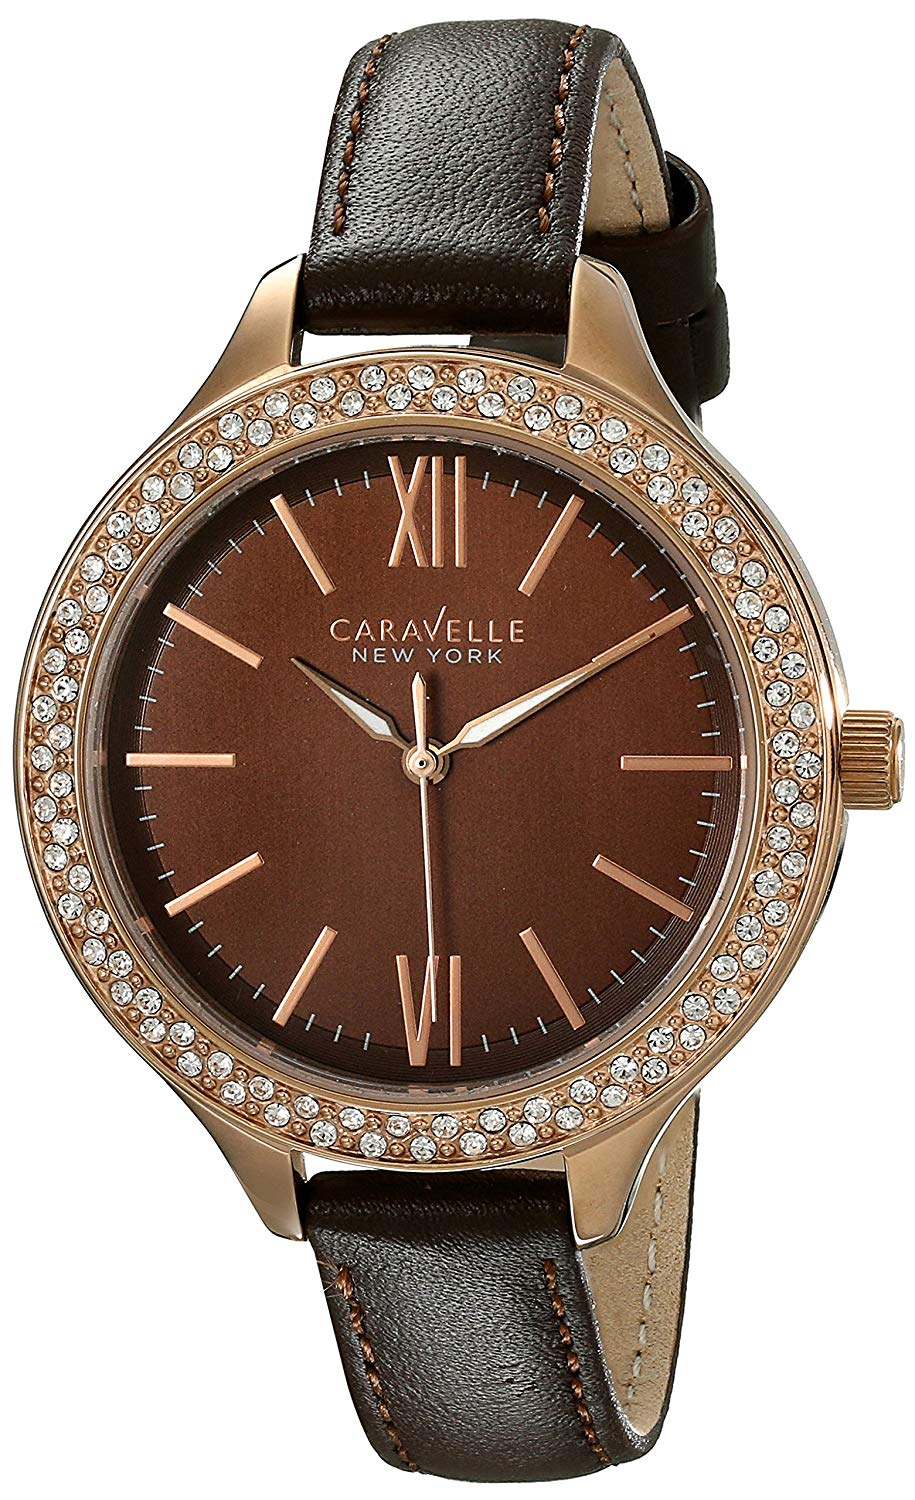 ブローバ 腕時計 レディース Caravelle New York Women's 44L124 Analog Display Japanese Quartz Brown Watchブローバ 腕時計 レディース